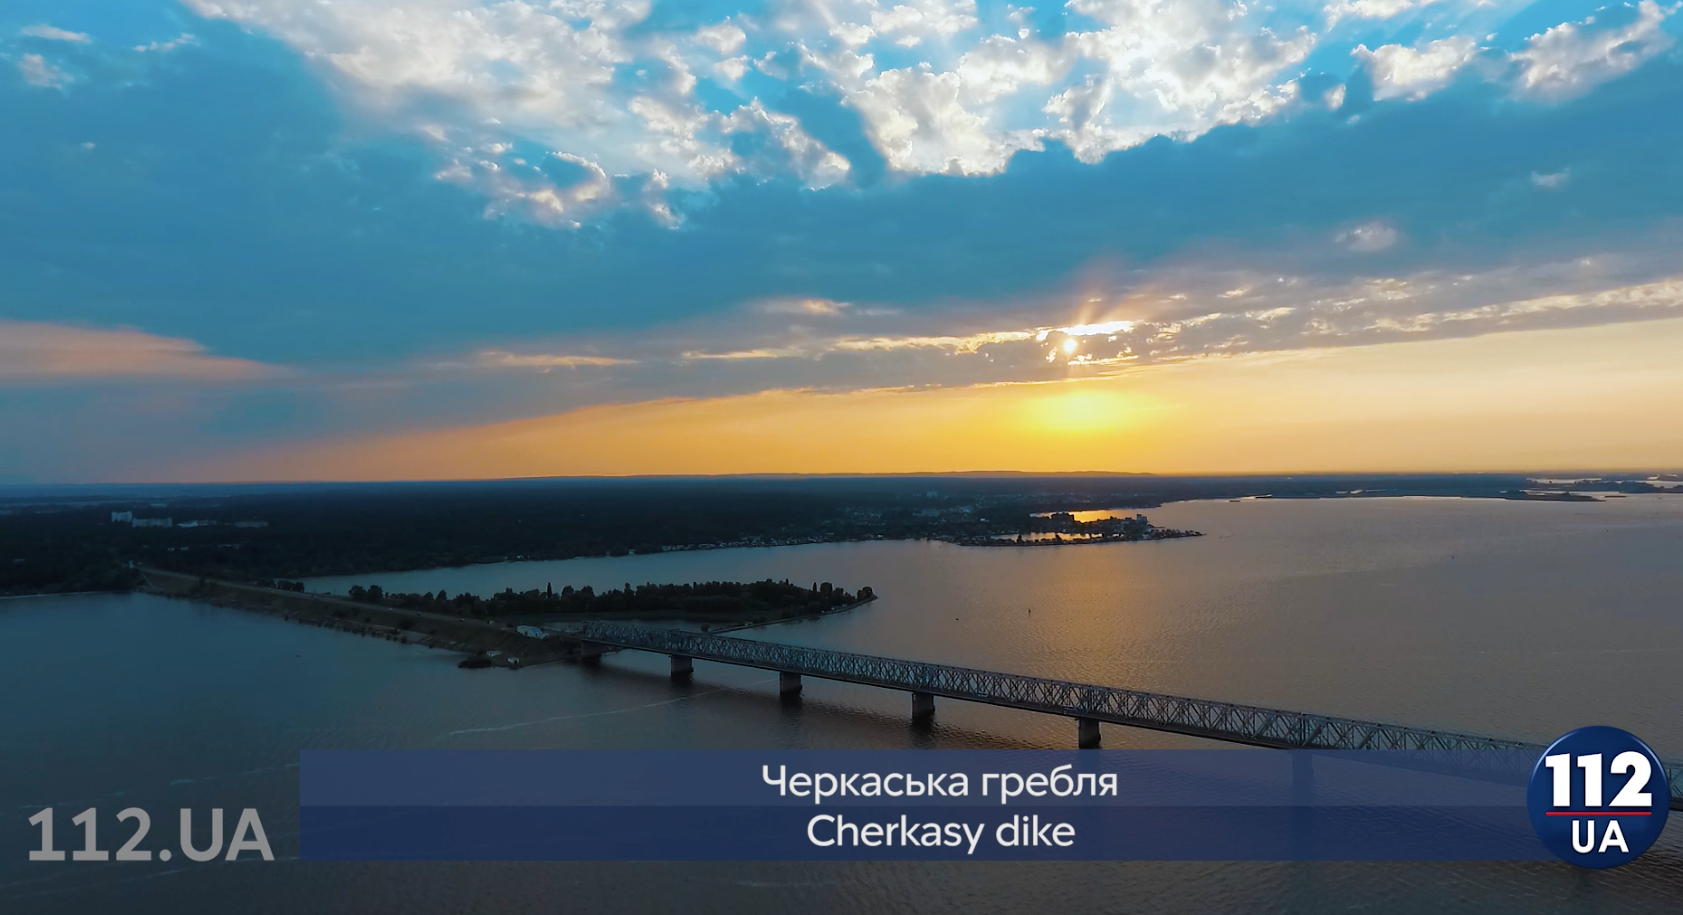 News of Cherkasy region: a selection of sites